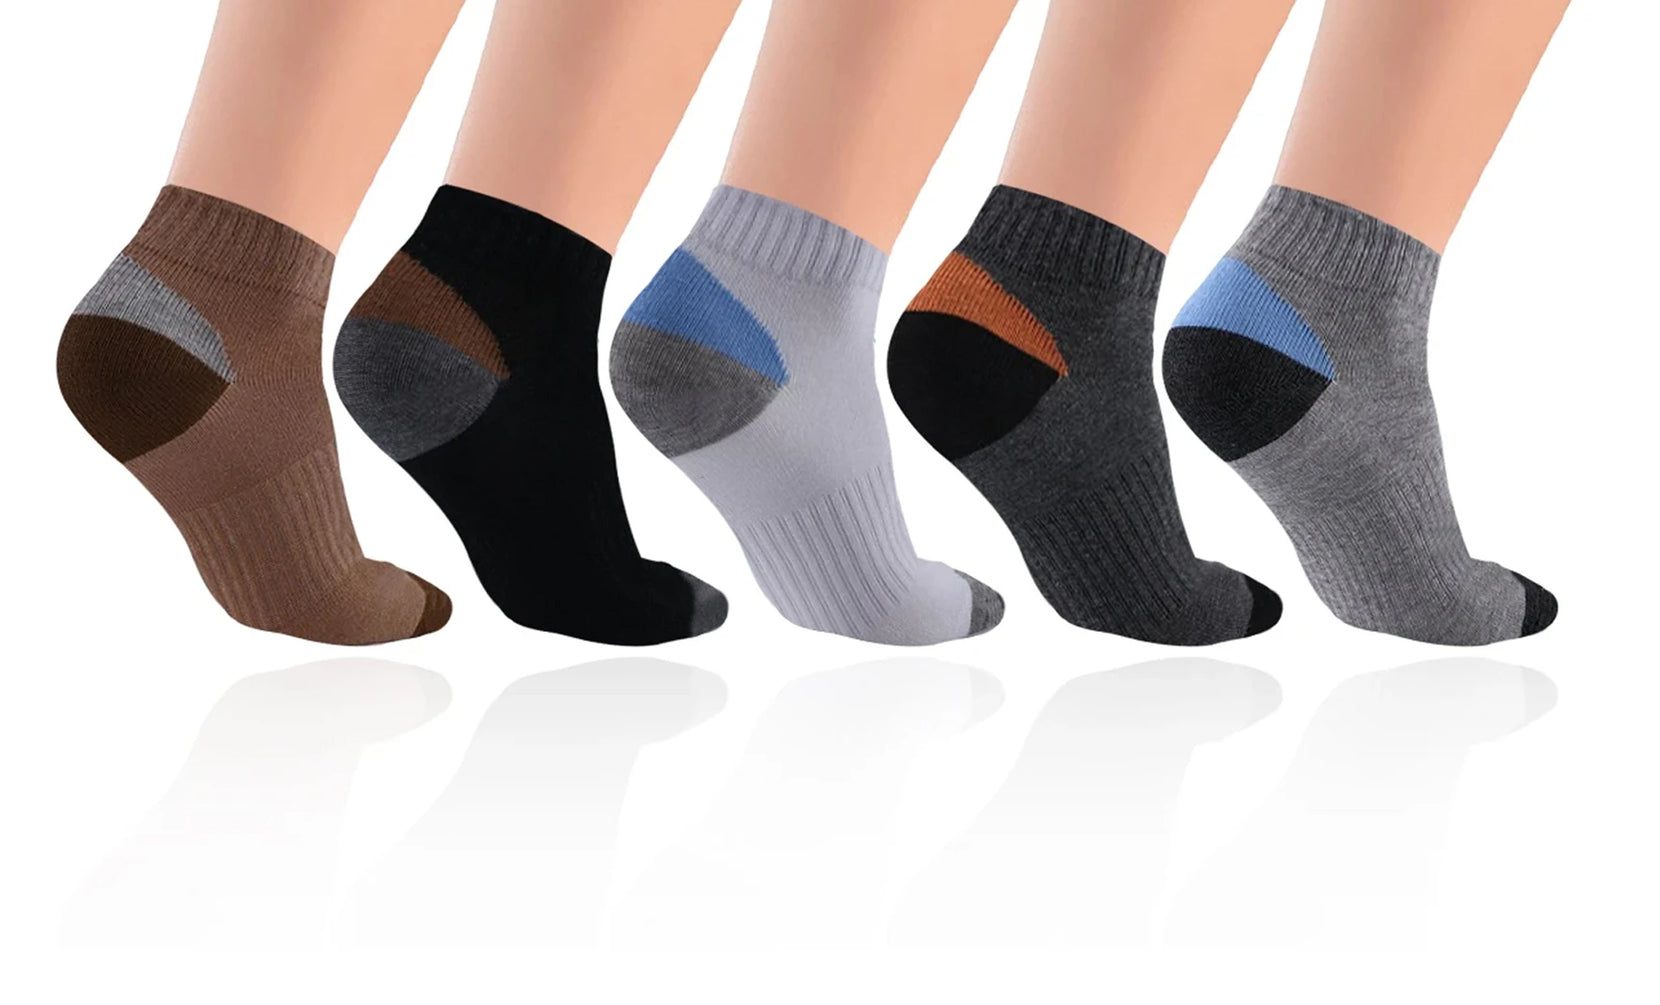 5-Pairs : Unisex High Compression Ankle Length Socks